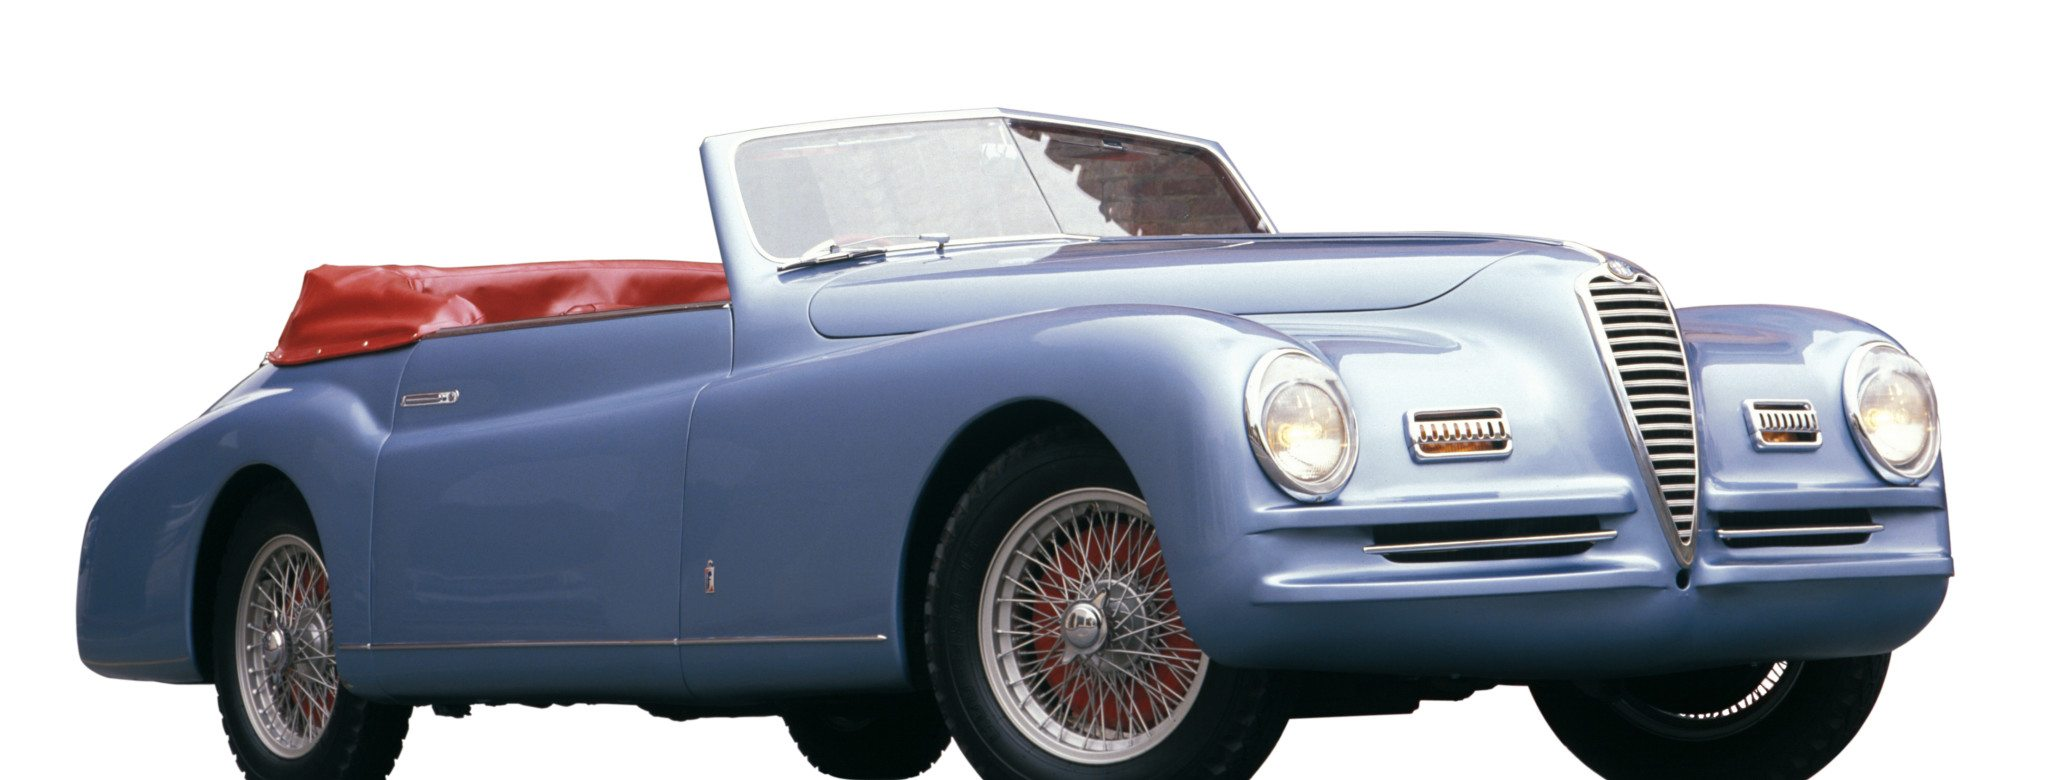 Classic Italian Sports Cars You Should Own Heacock Classic - Classic sports cars